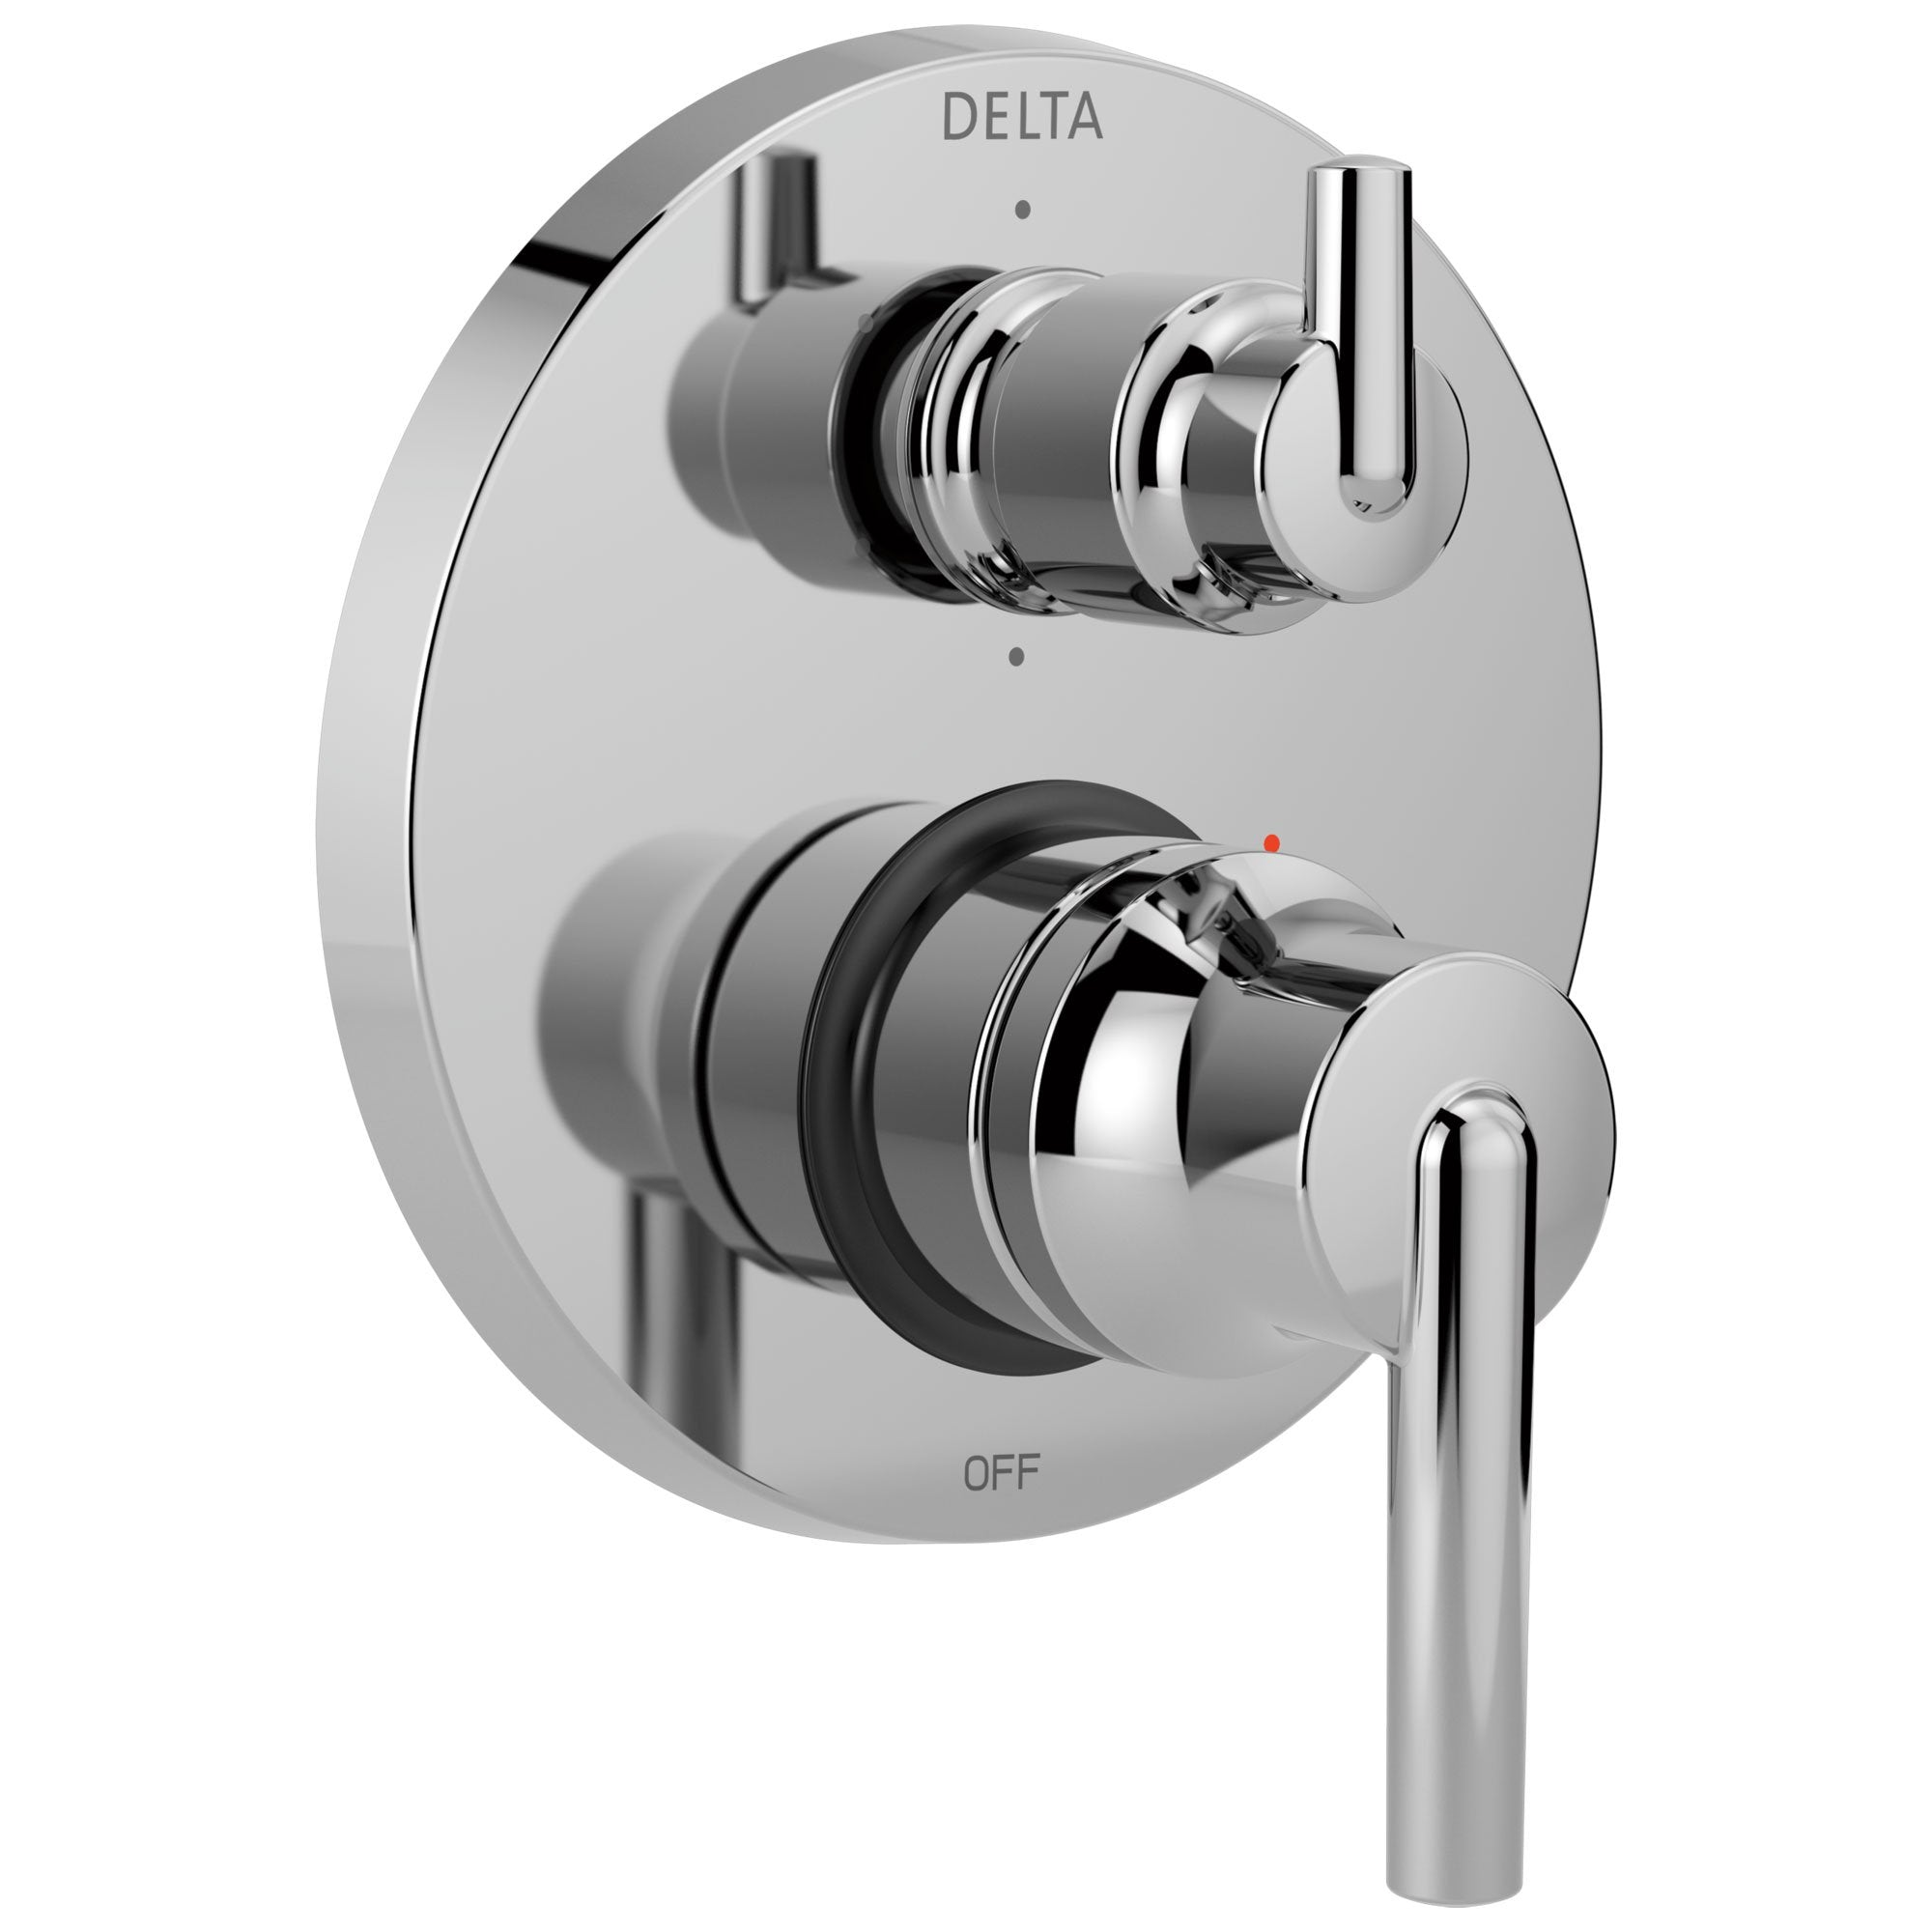 Delta Trinsic Chrome Contemporary Monitor 14 Shower Faucet Control Handle with 6-Setting Integrated Diverter Includes Trim Kit and Valve without Stops D2200V